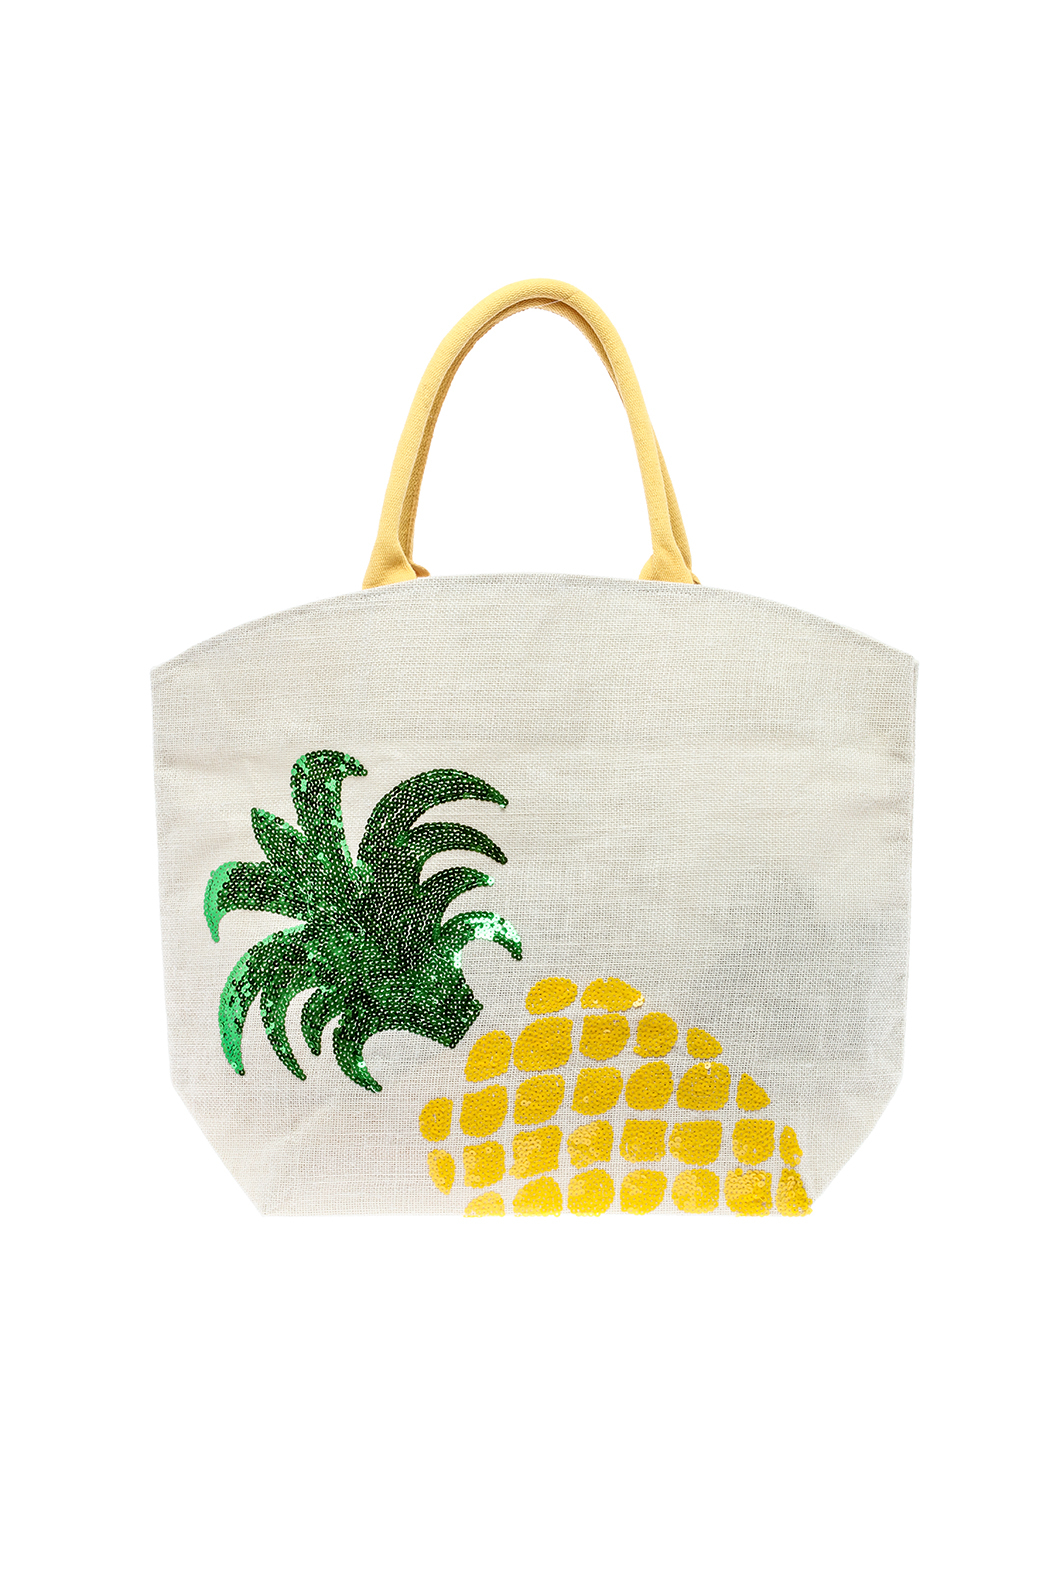 f7470fbb8f0f Glamorous Straw Beach Bag With Pineapple Embroidery